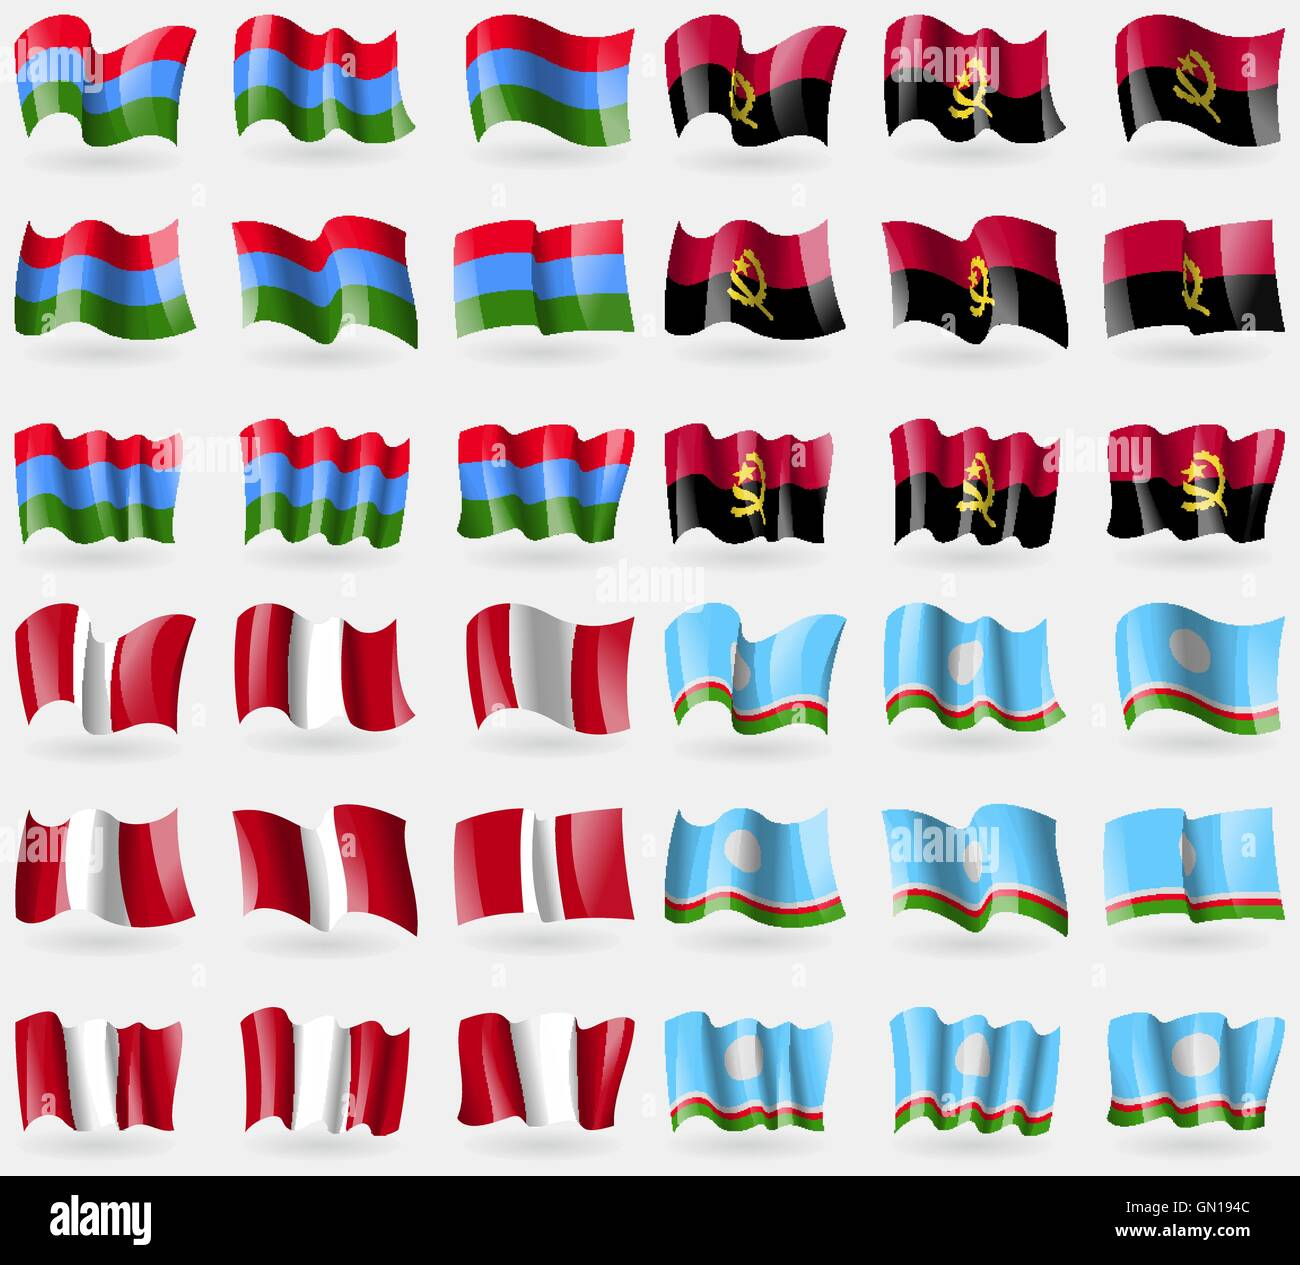 Karelia, Angola, Peru, Sakha Republic. Set of 36 flags of the countries of the world. Vector - Stock Image